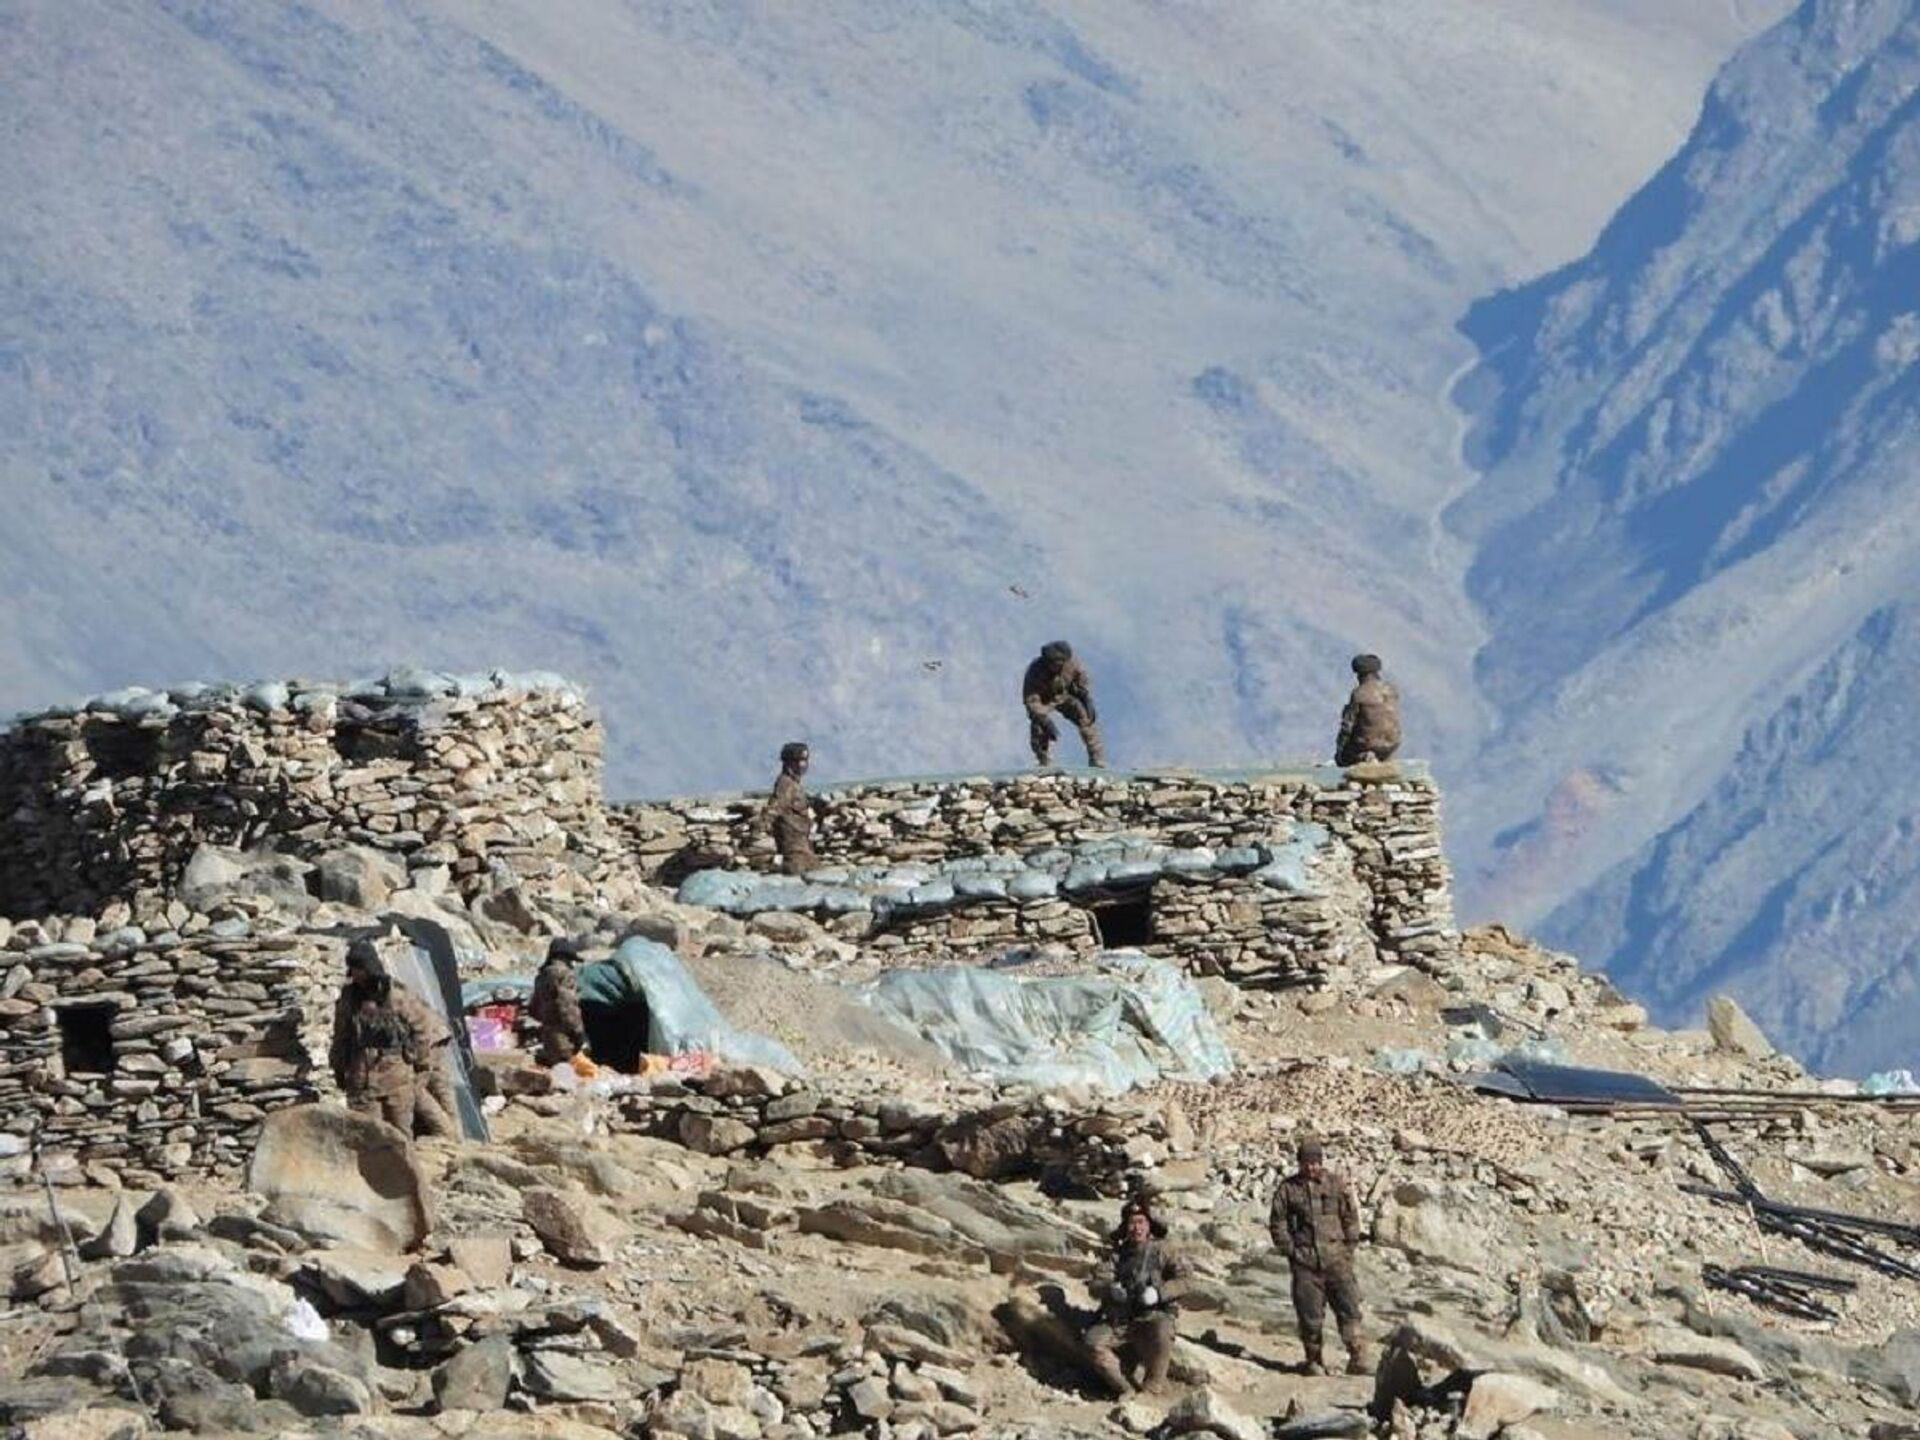 This photograph provided by the Indian Army, according to them shows Chinese troops dismantling their bunkers at Pangong Tso region, in Ladakh along the India-China border on Monday, Feb.15, 2021 - Sputnik International, 1920, 07.09.2021